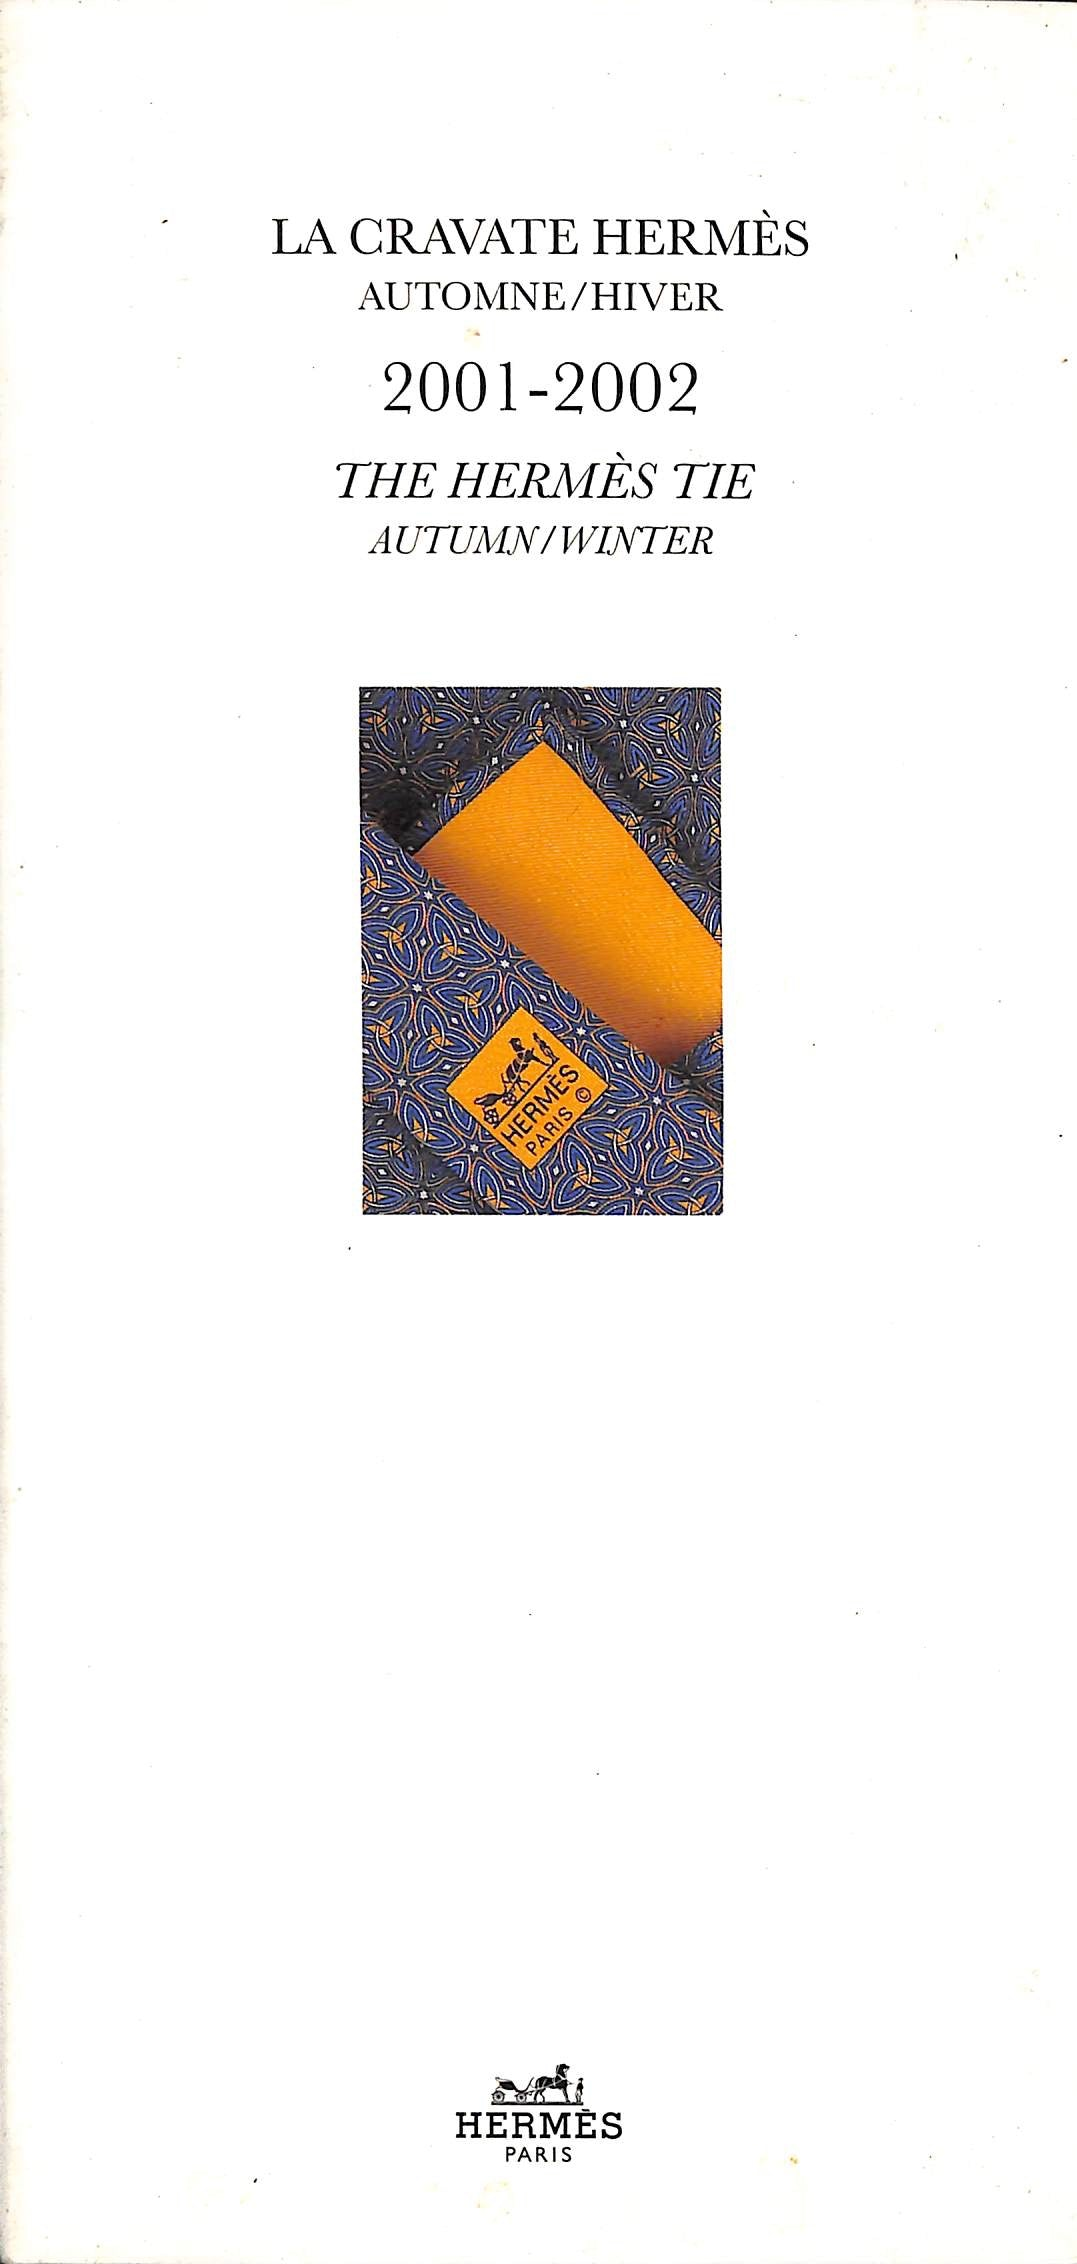 The Hermes Tie Autumn/Winter 2001-2002